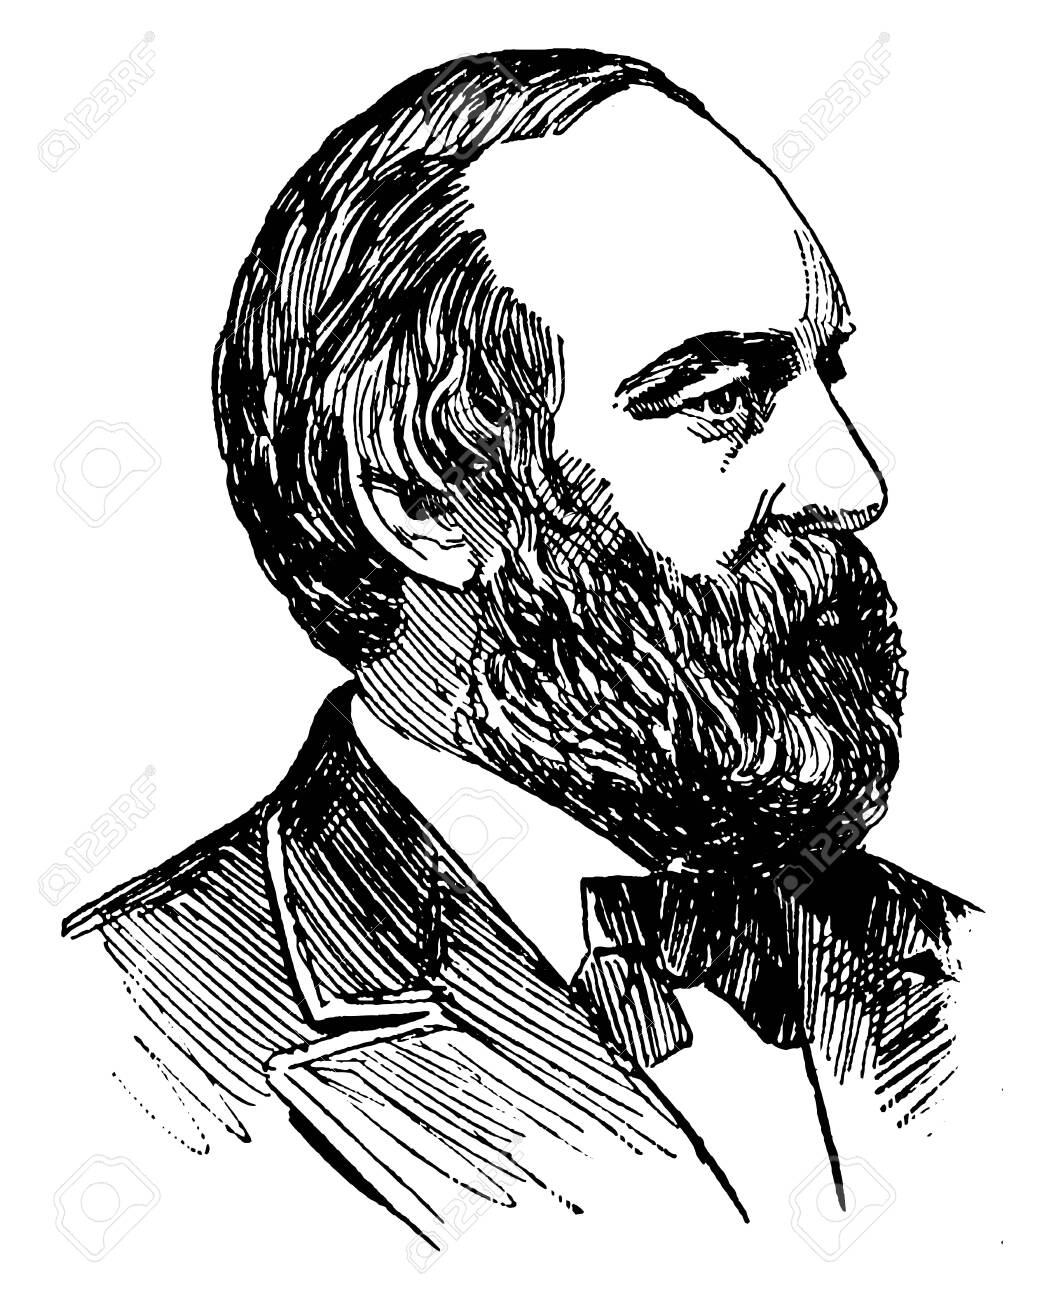 James A Garfield 1831 1881 He Was The 20th President Of The Royalty Free Cliparts Vectors And Stock Illustration Image 133483714